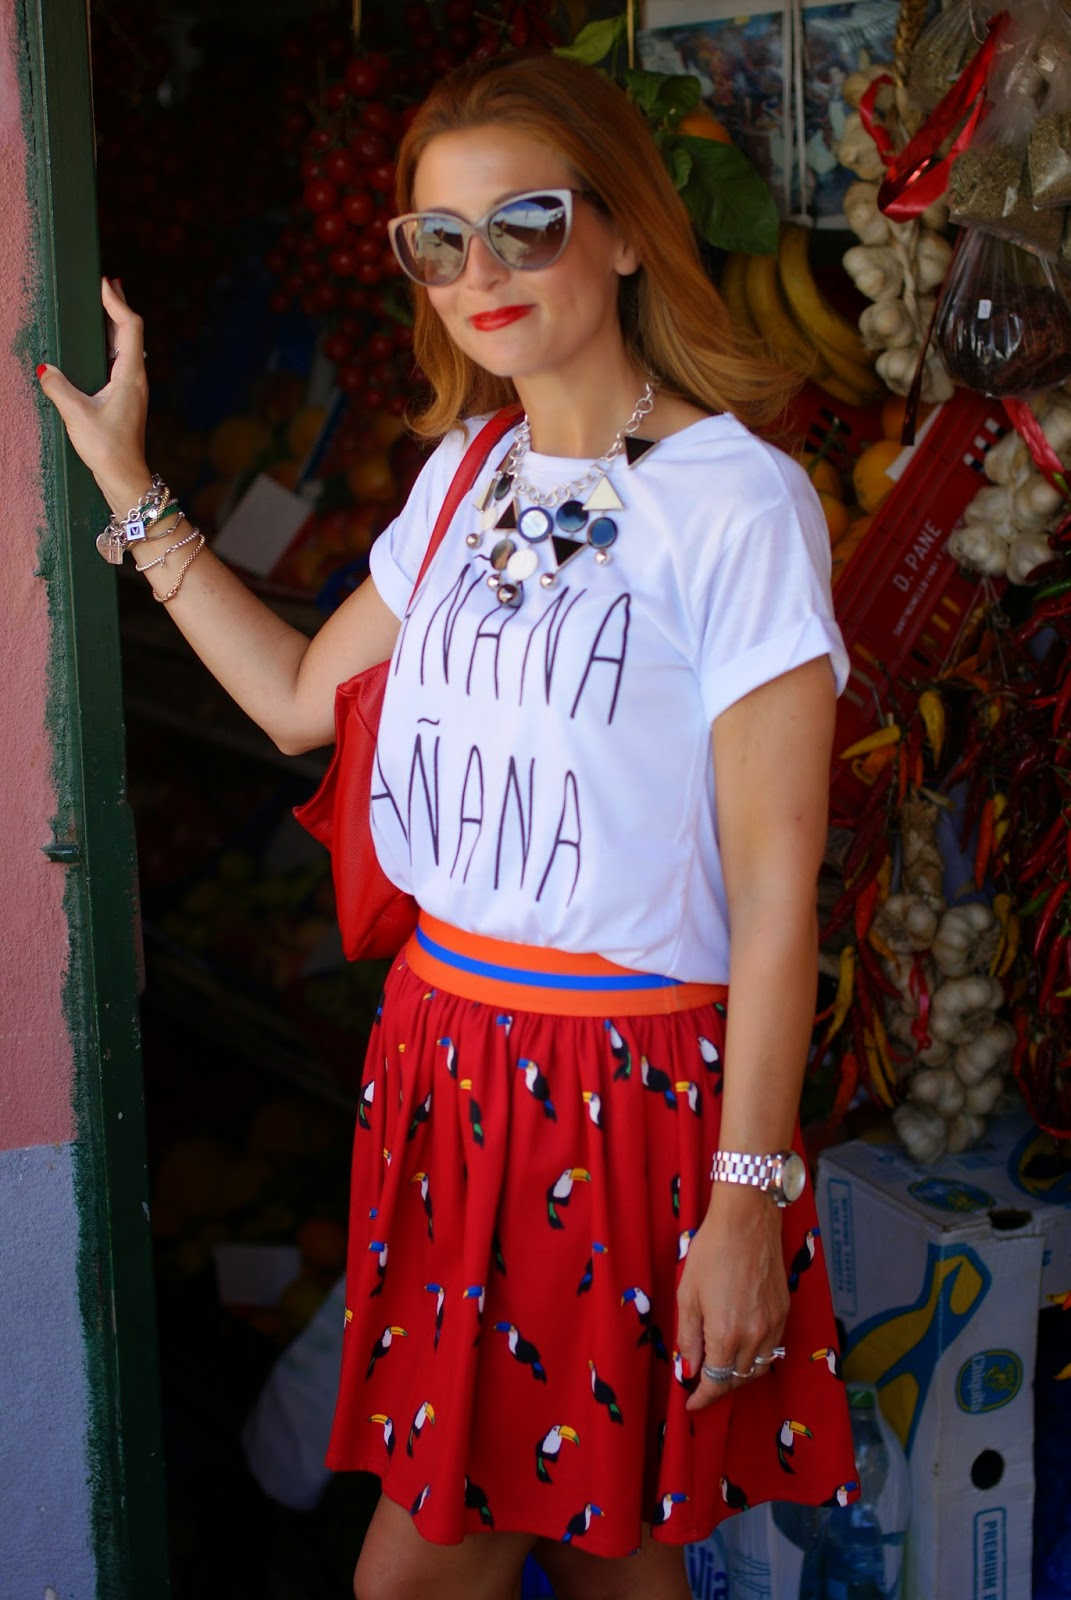 Vitti Ferria Contin necklace, manana t-shirt, Moschino sunglasses, Fashion and Cookies, fashion blogger